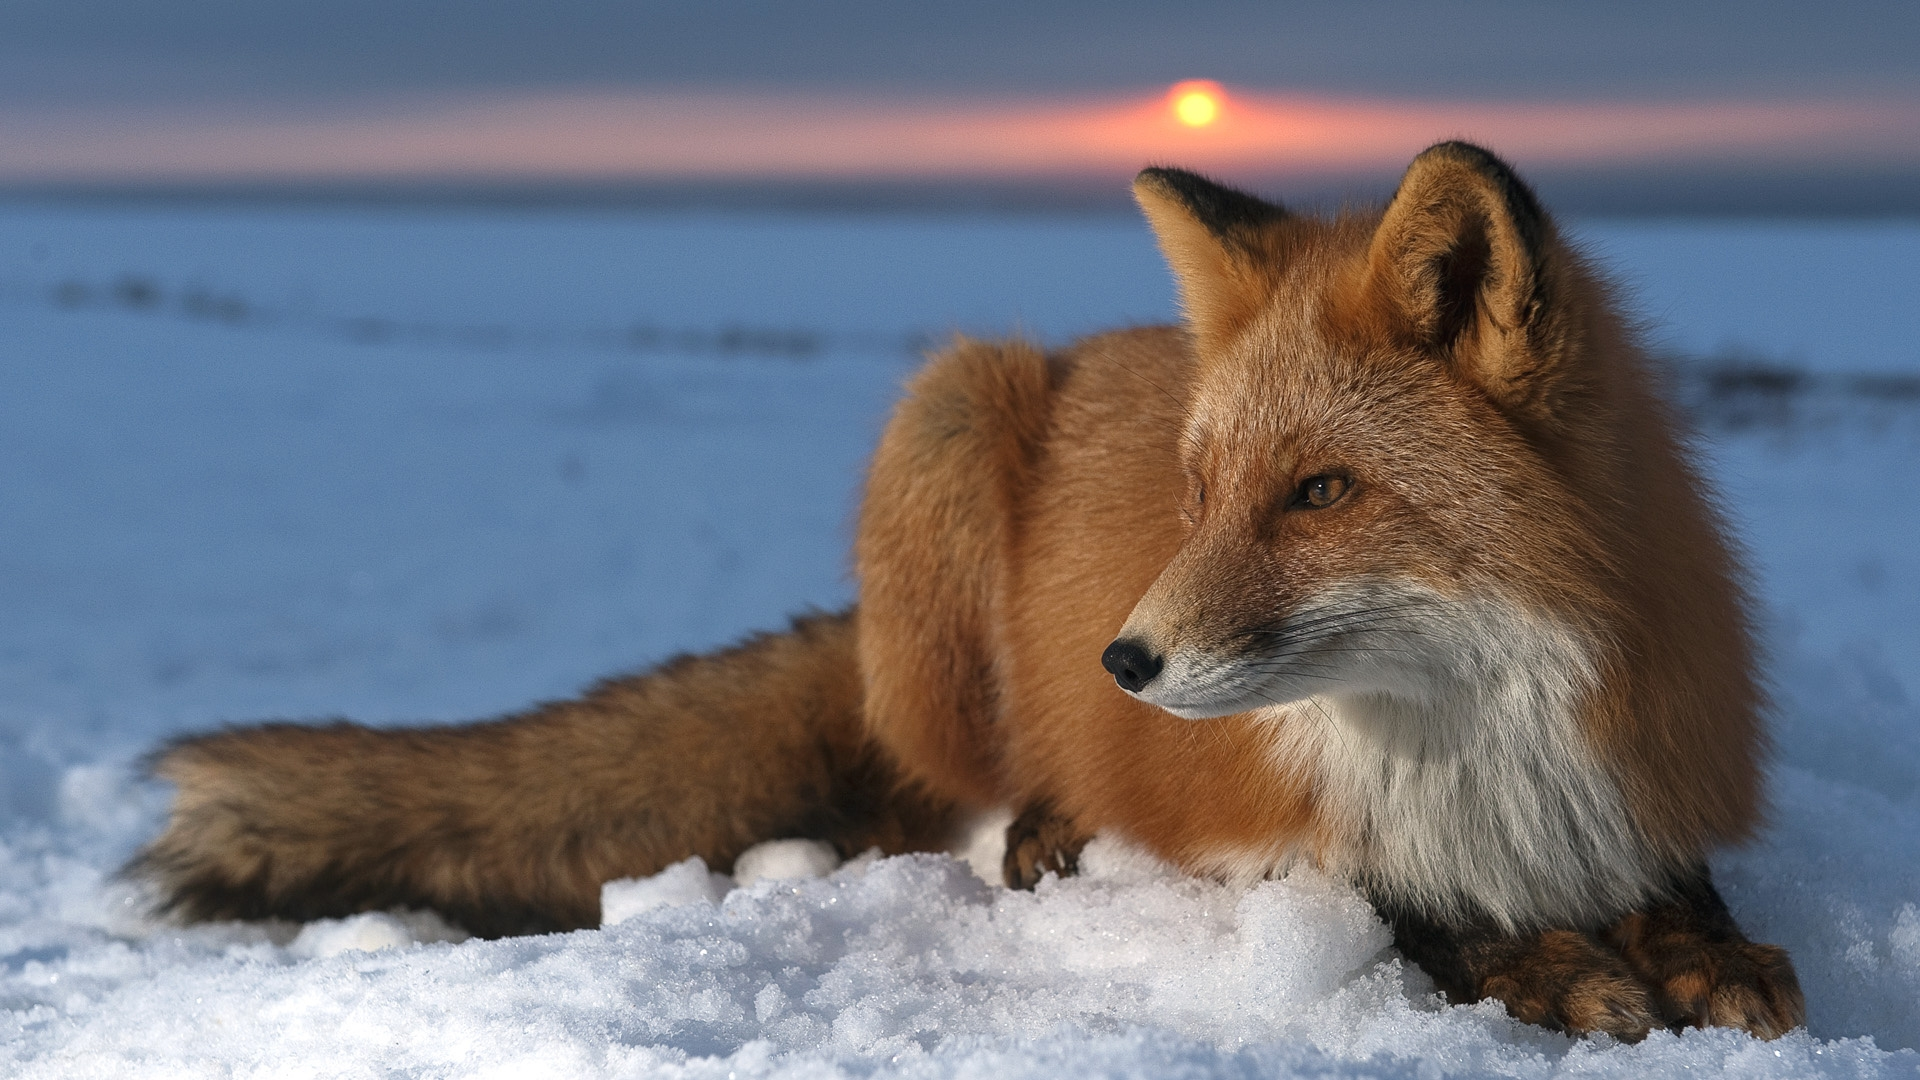 Download Wallpaper fox, snow, sky, hunting, care HD Background